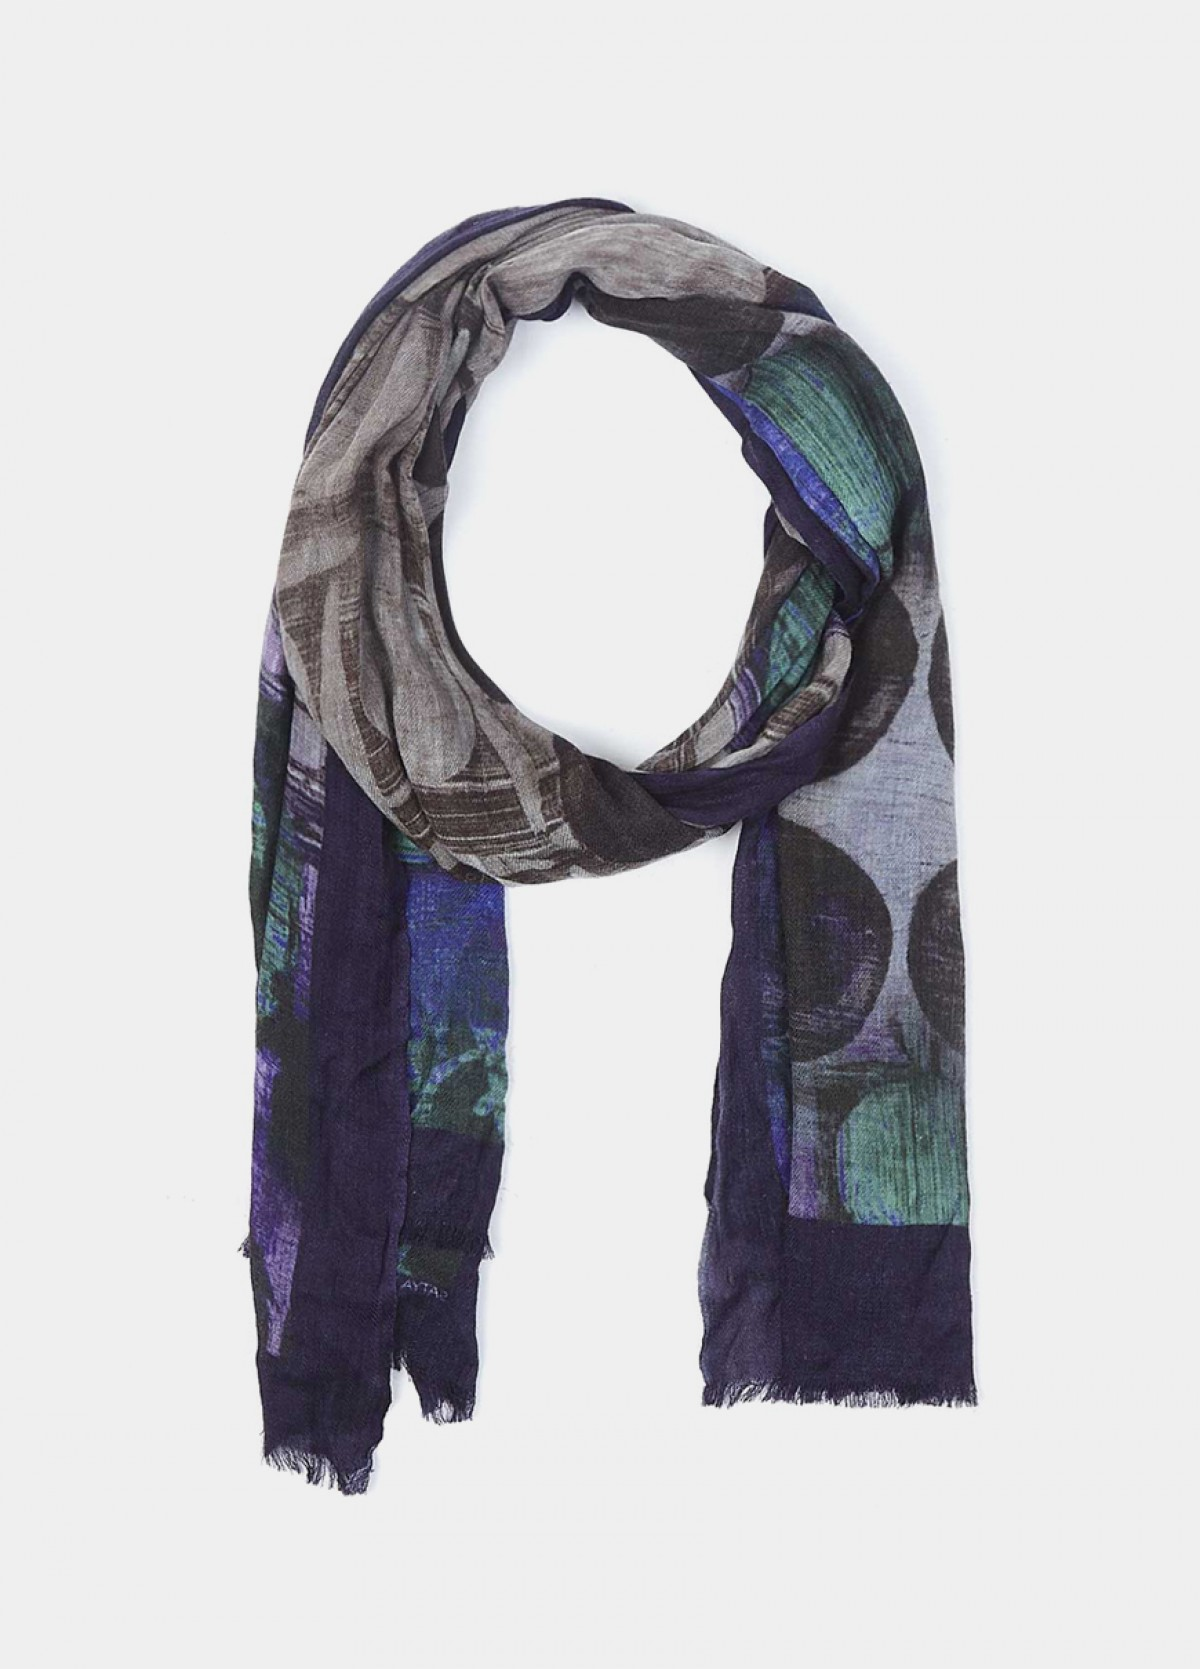 The Floral Streaks Shawl